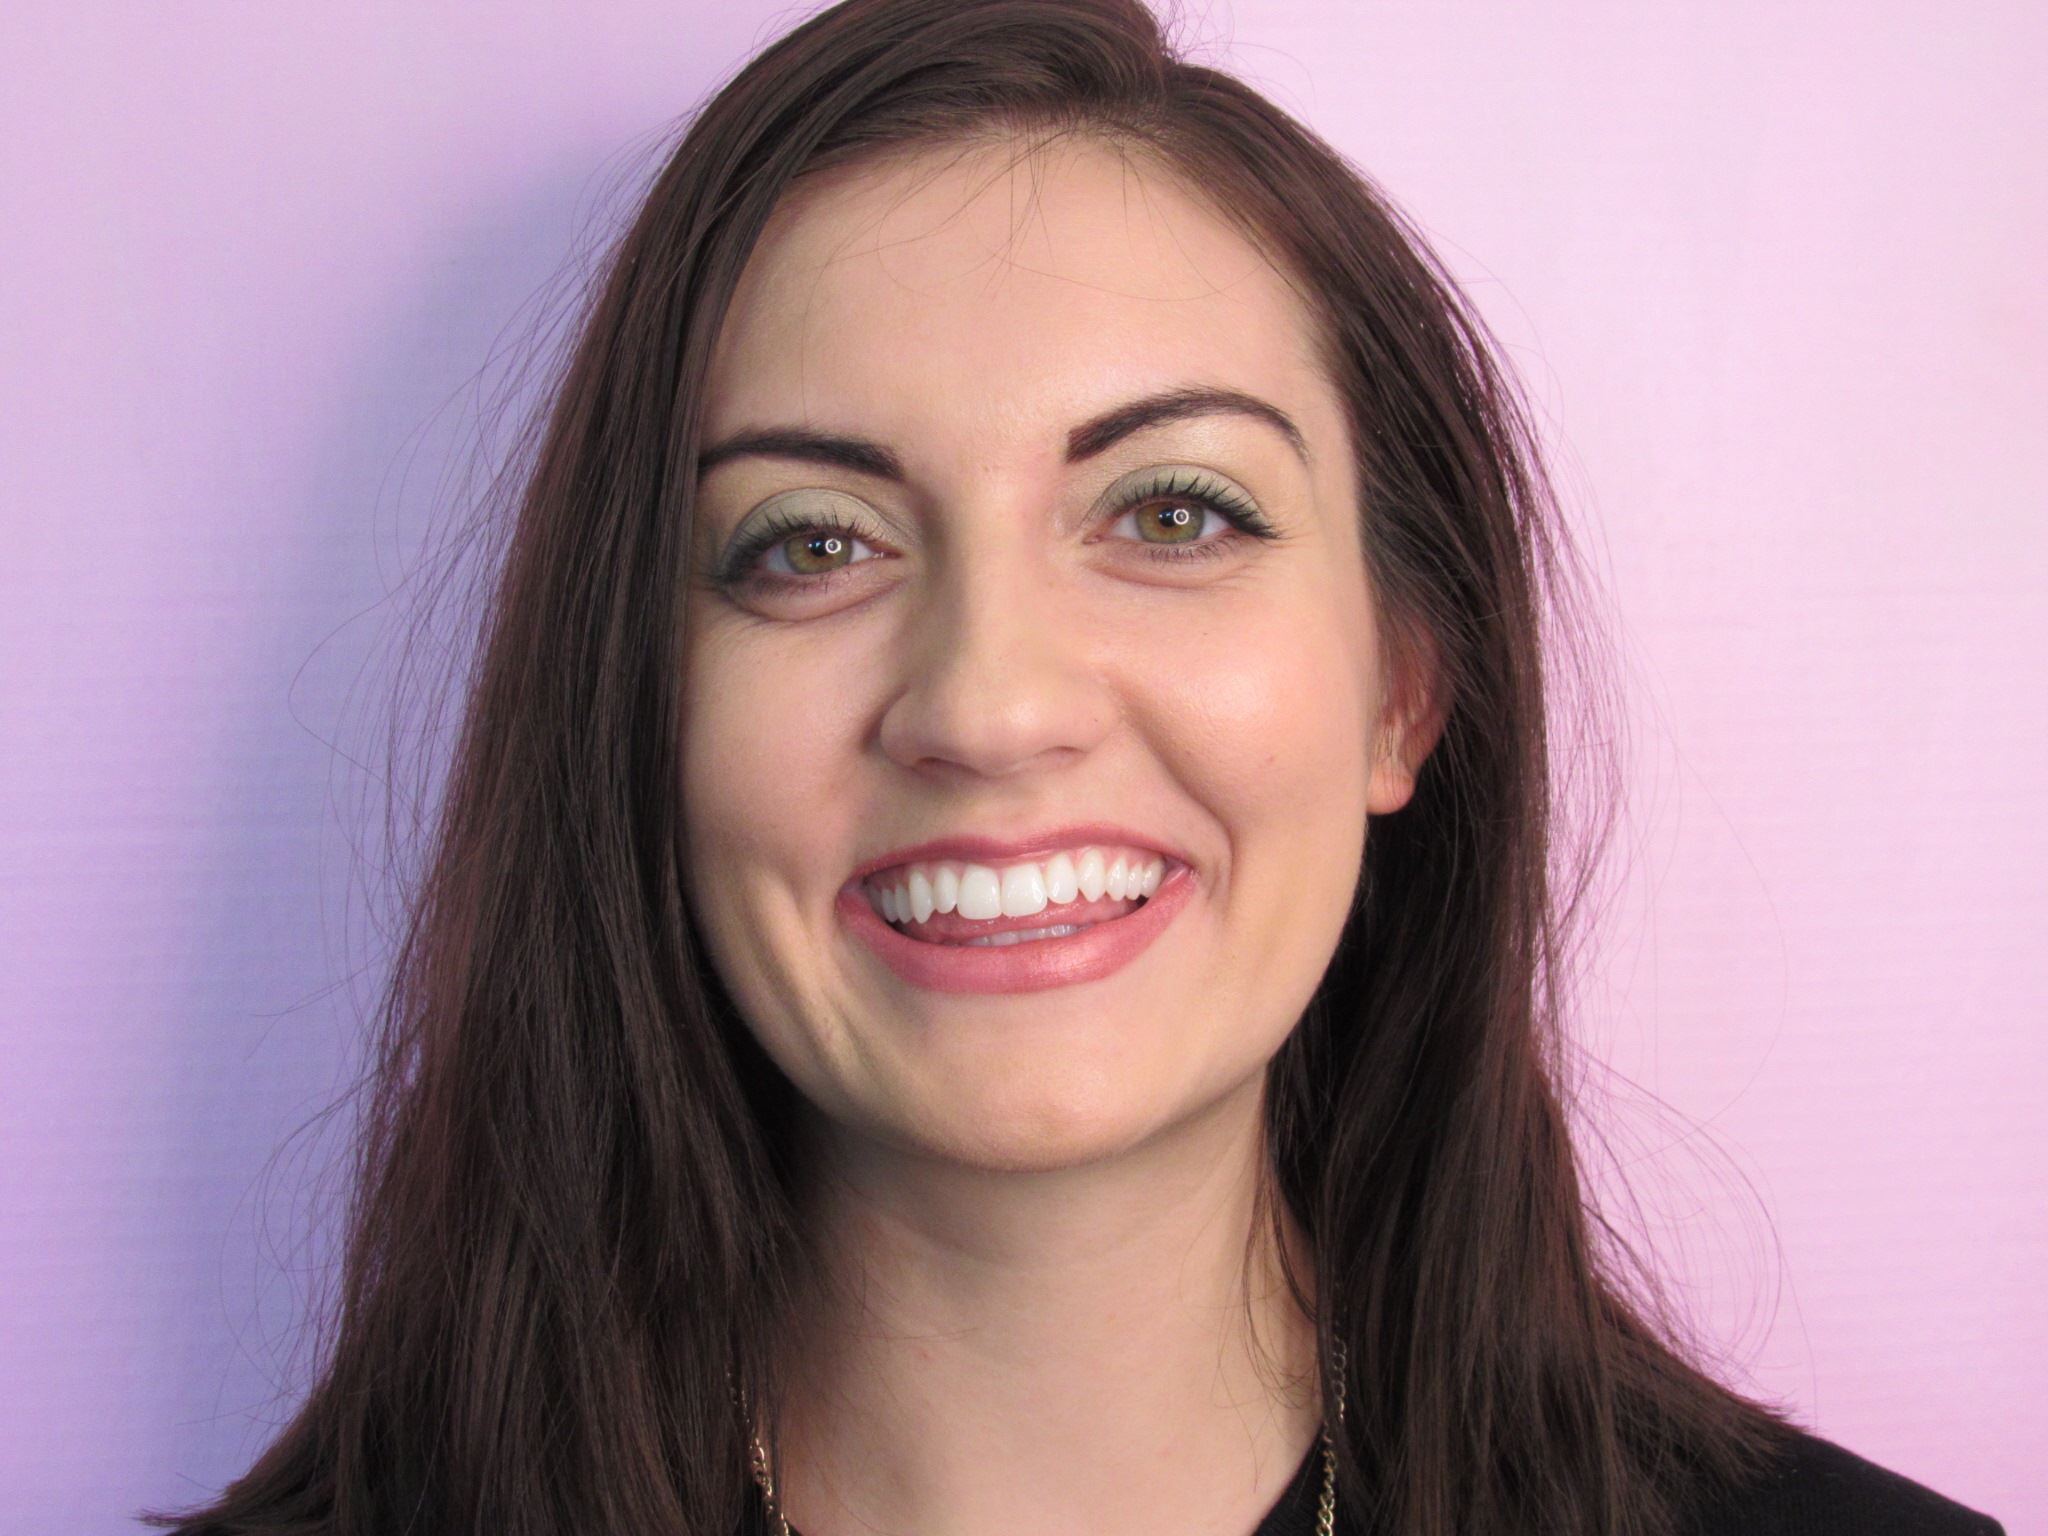 danielle boswell, rpsgt